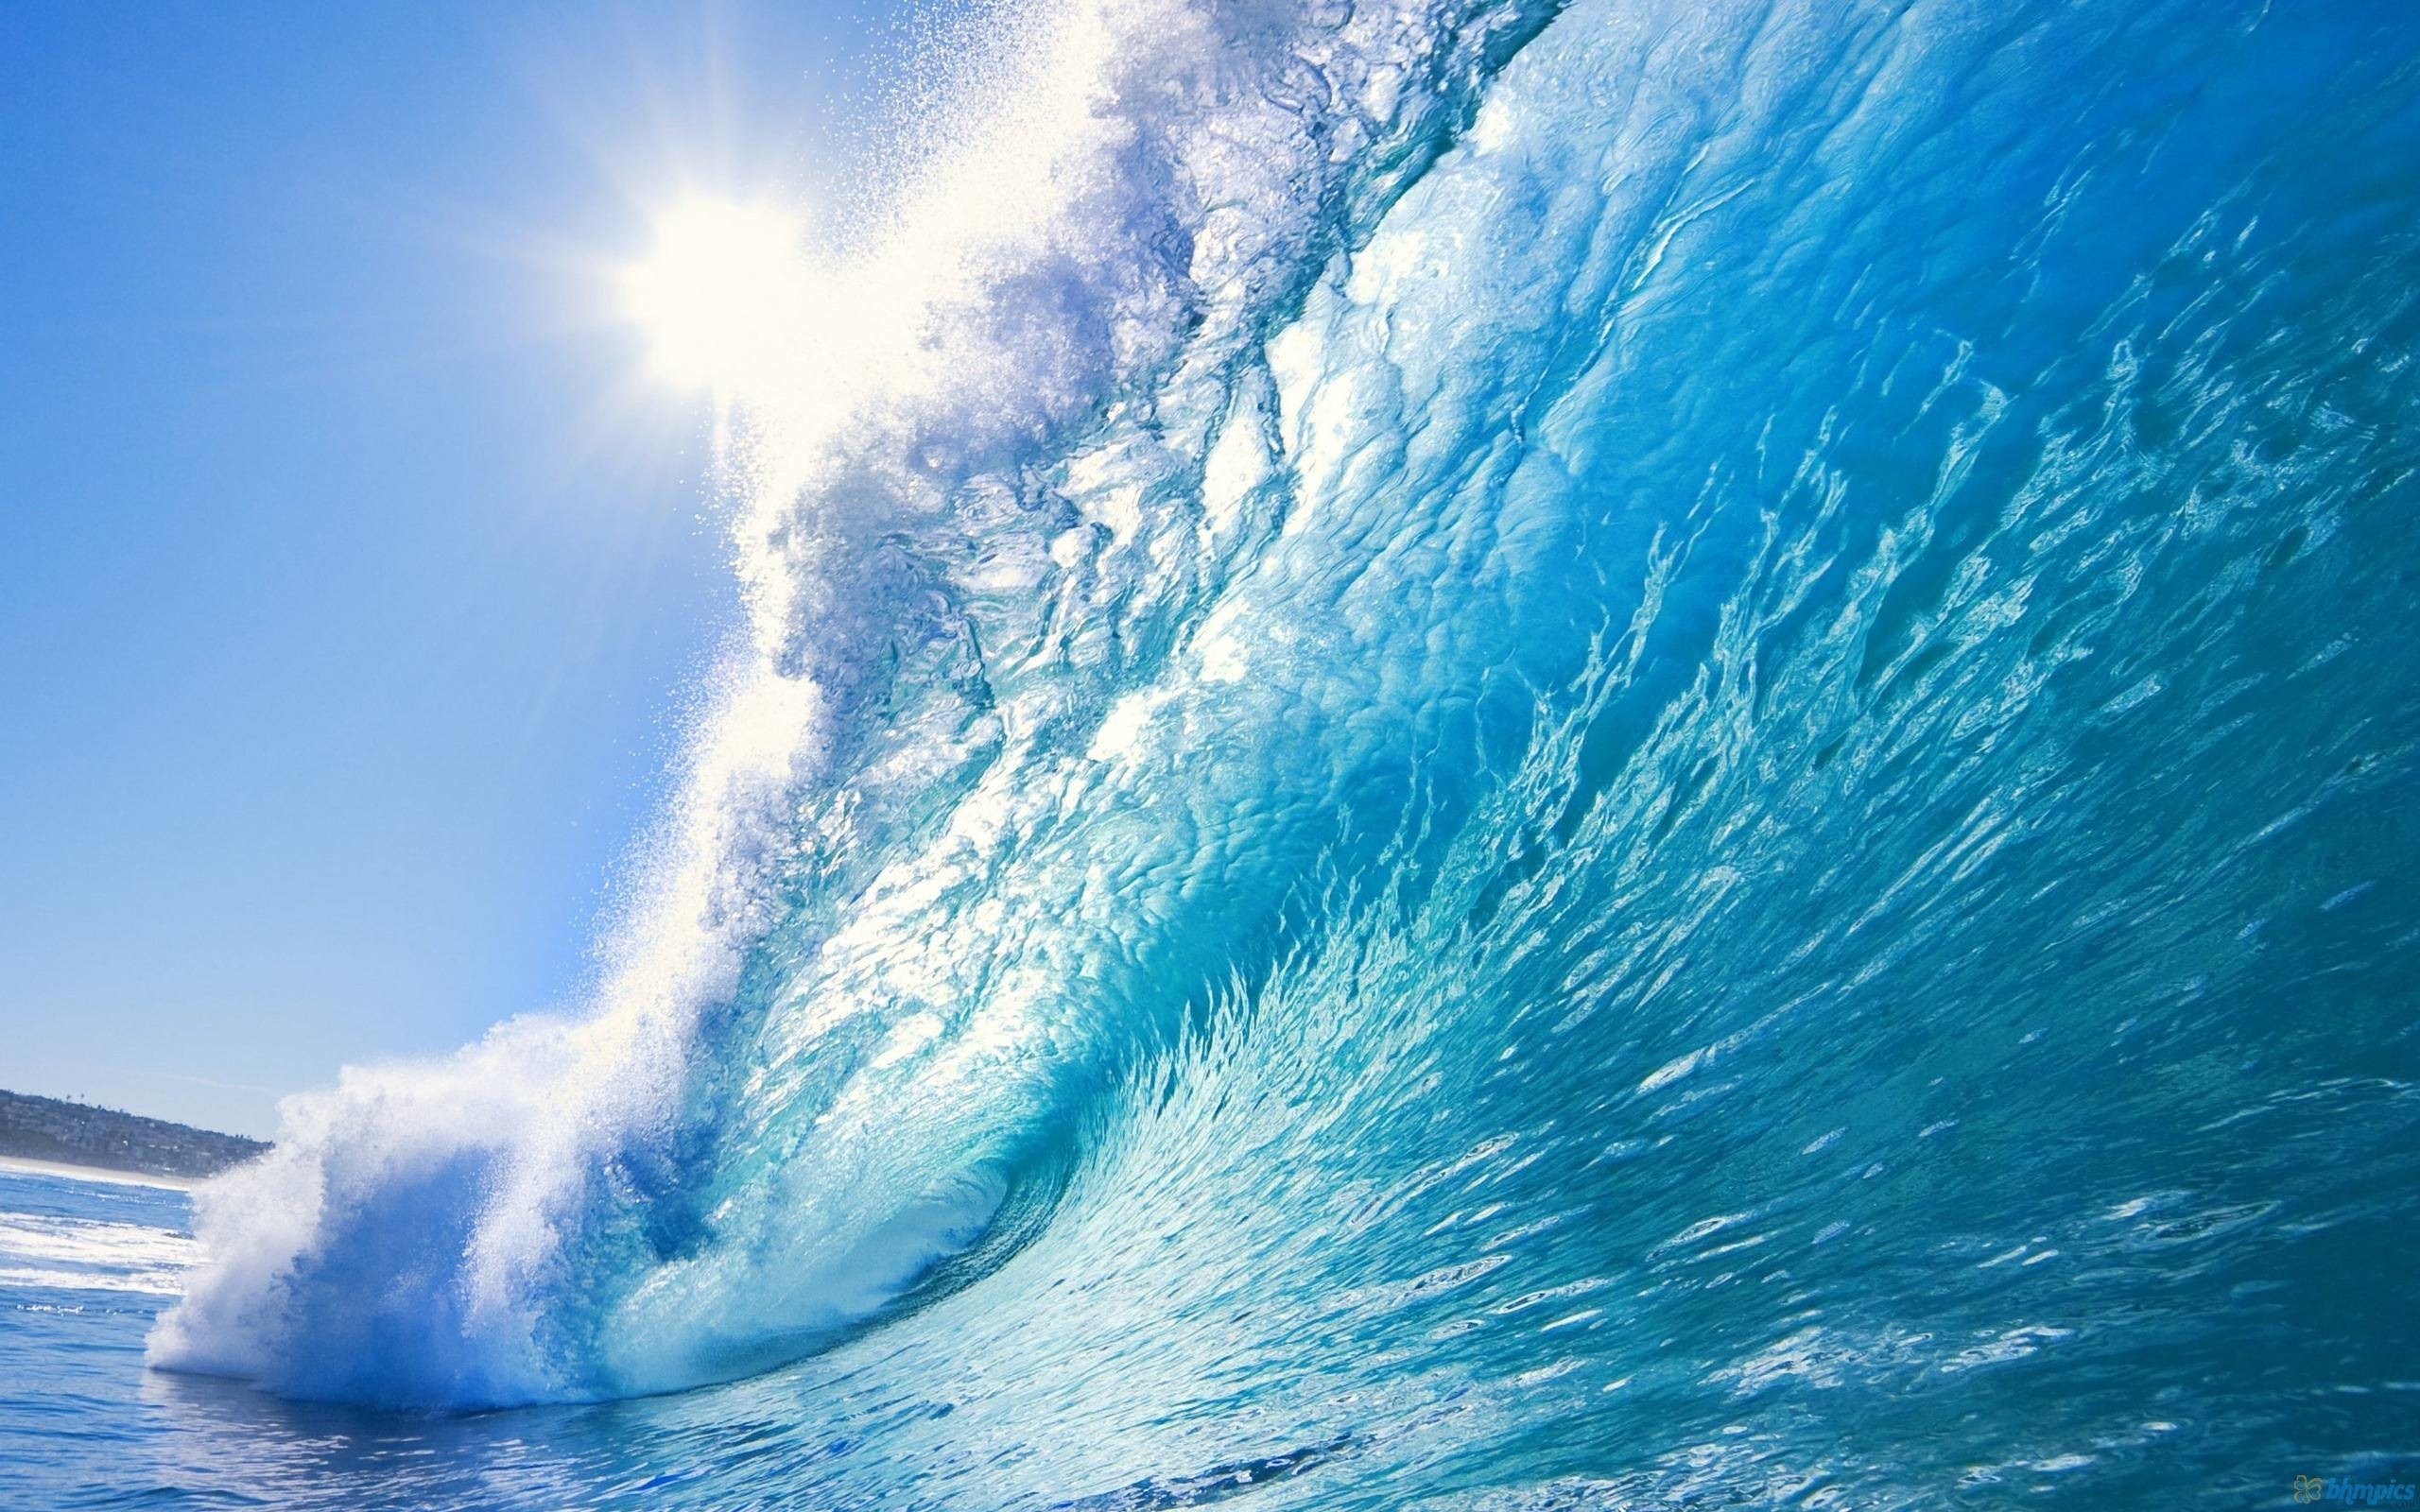 2560x1600 Big blue wave